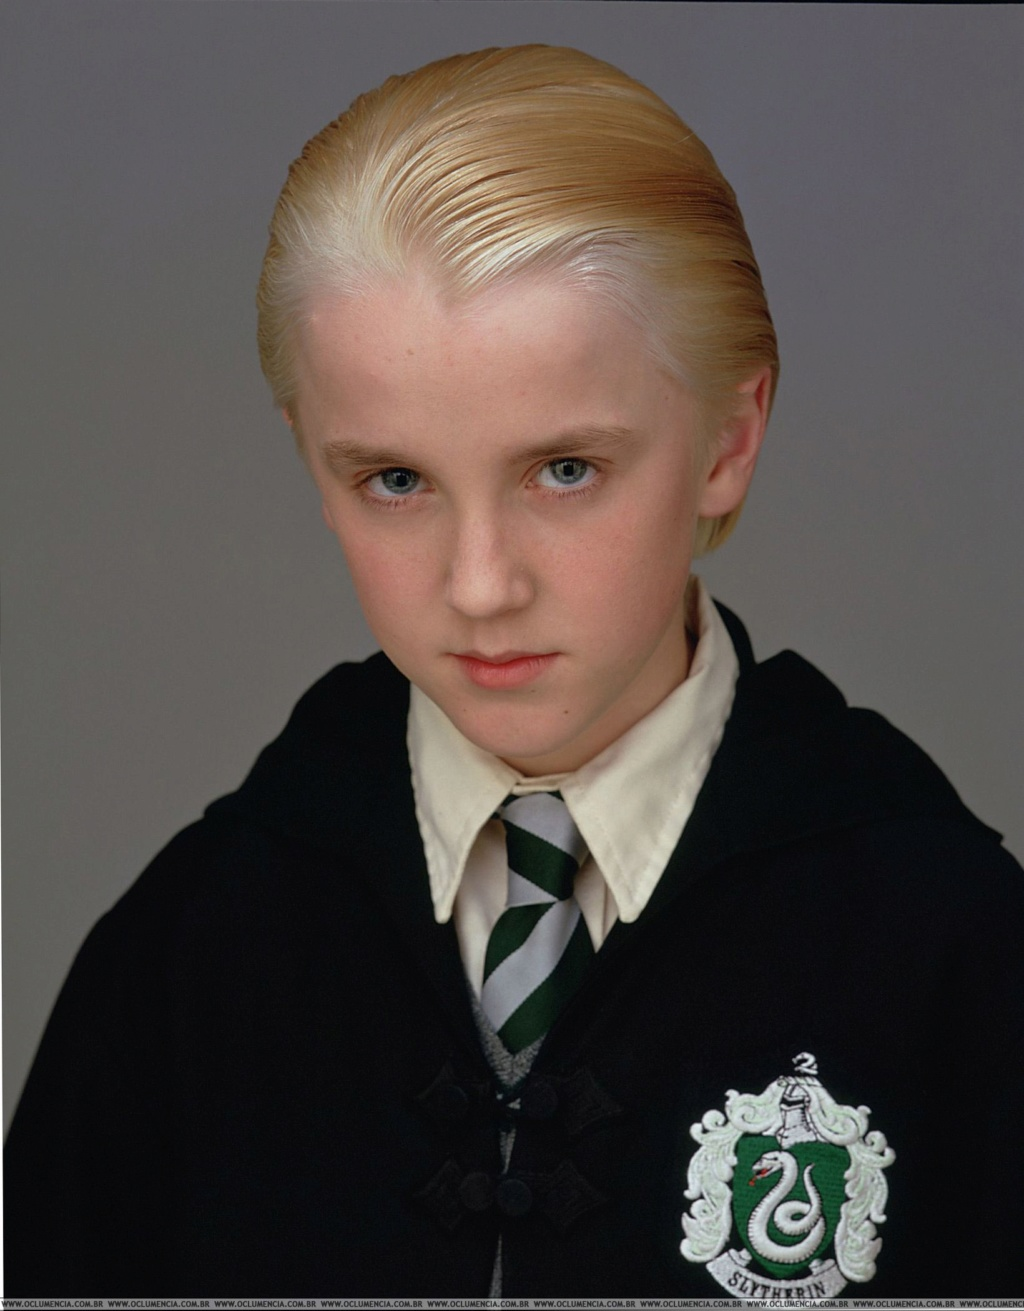 DracoMalfoy2 - NEW PRODUCT: STAR ACE Toys: 1/6 Harry Potter + Malfoy 2.0 Playing Set & Single & Uniform Edition 42d2dd10